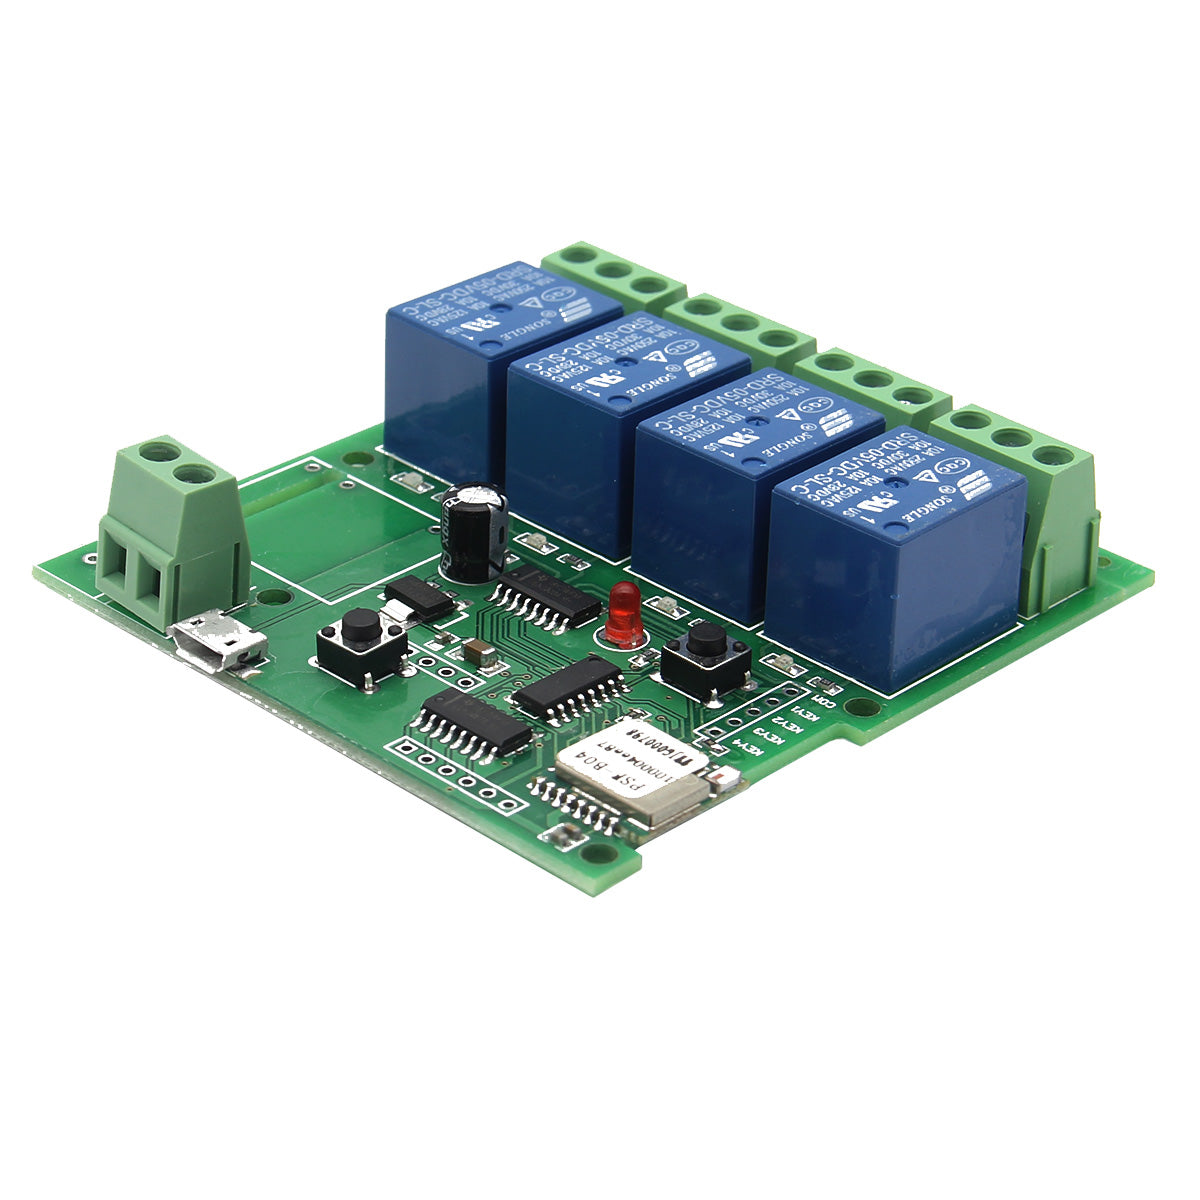 5v Usb Relay 1 Channel Programmable Computer Control For Smart Home 12 V Board Module Controller Automation Robotics Sonoff Or Dc Diy 4 Jog Inching Self Locking Wifi